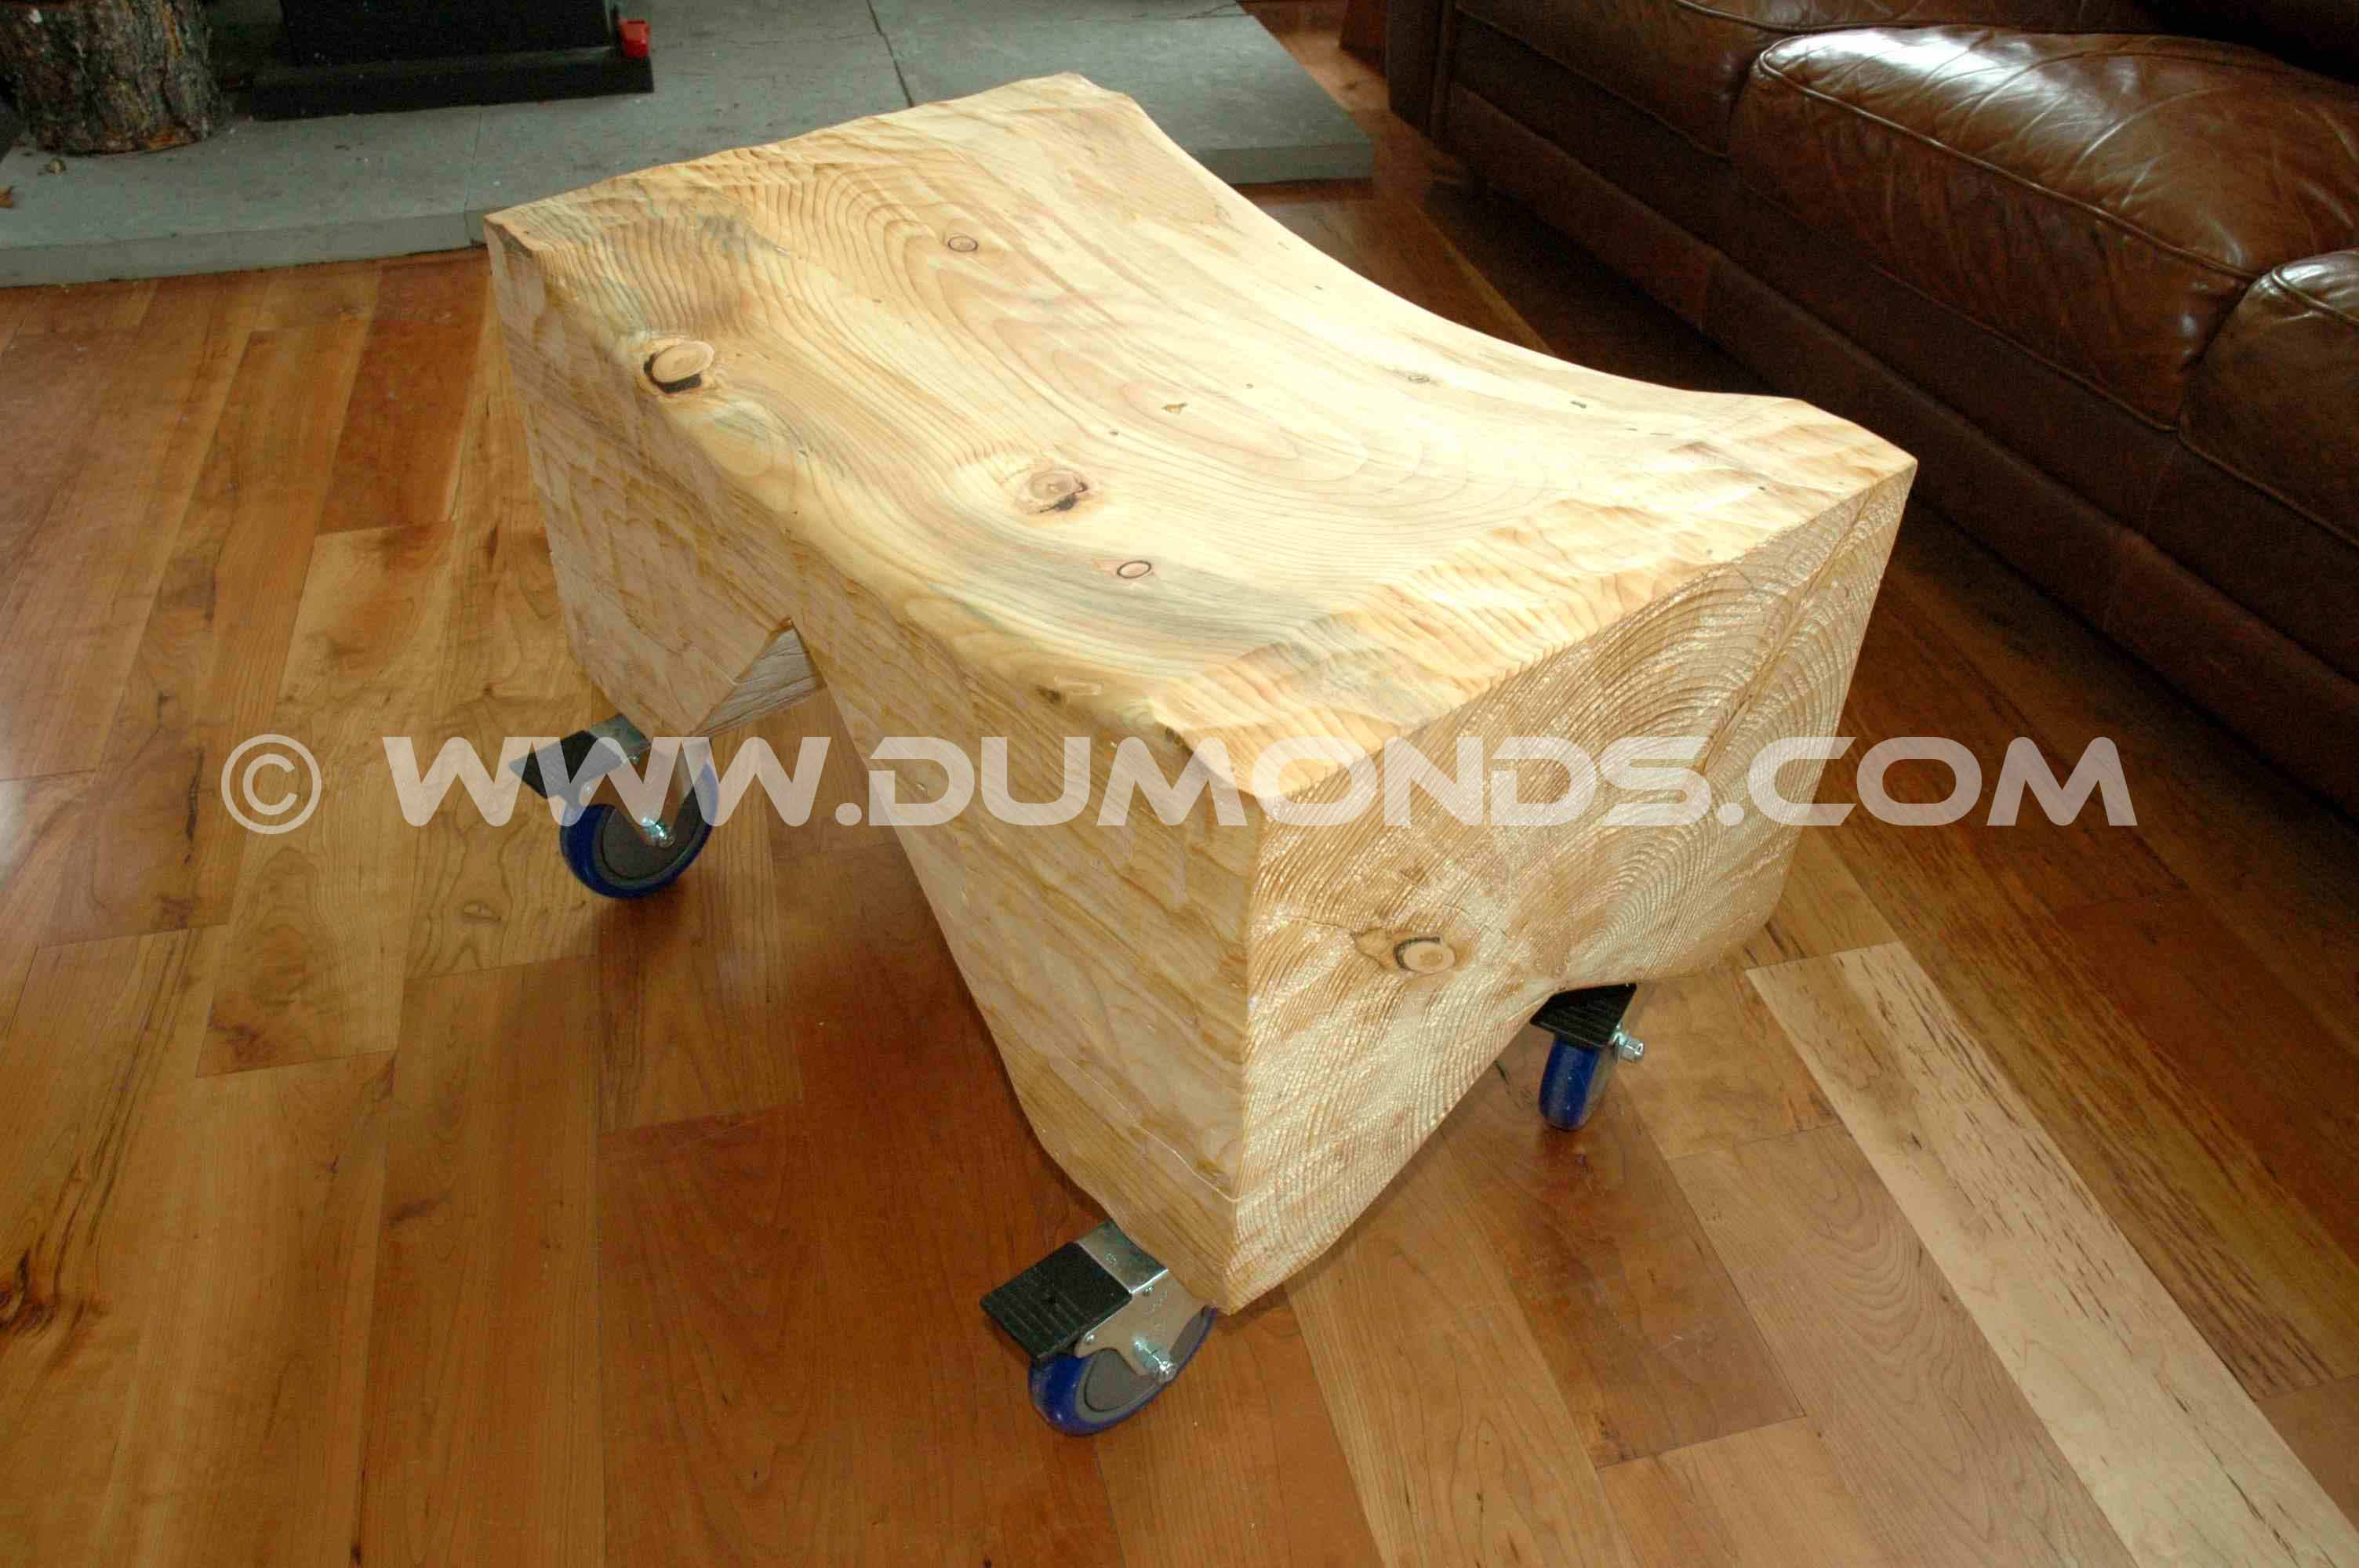 Doug Fir block bench on locking casters